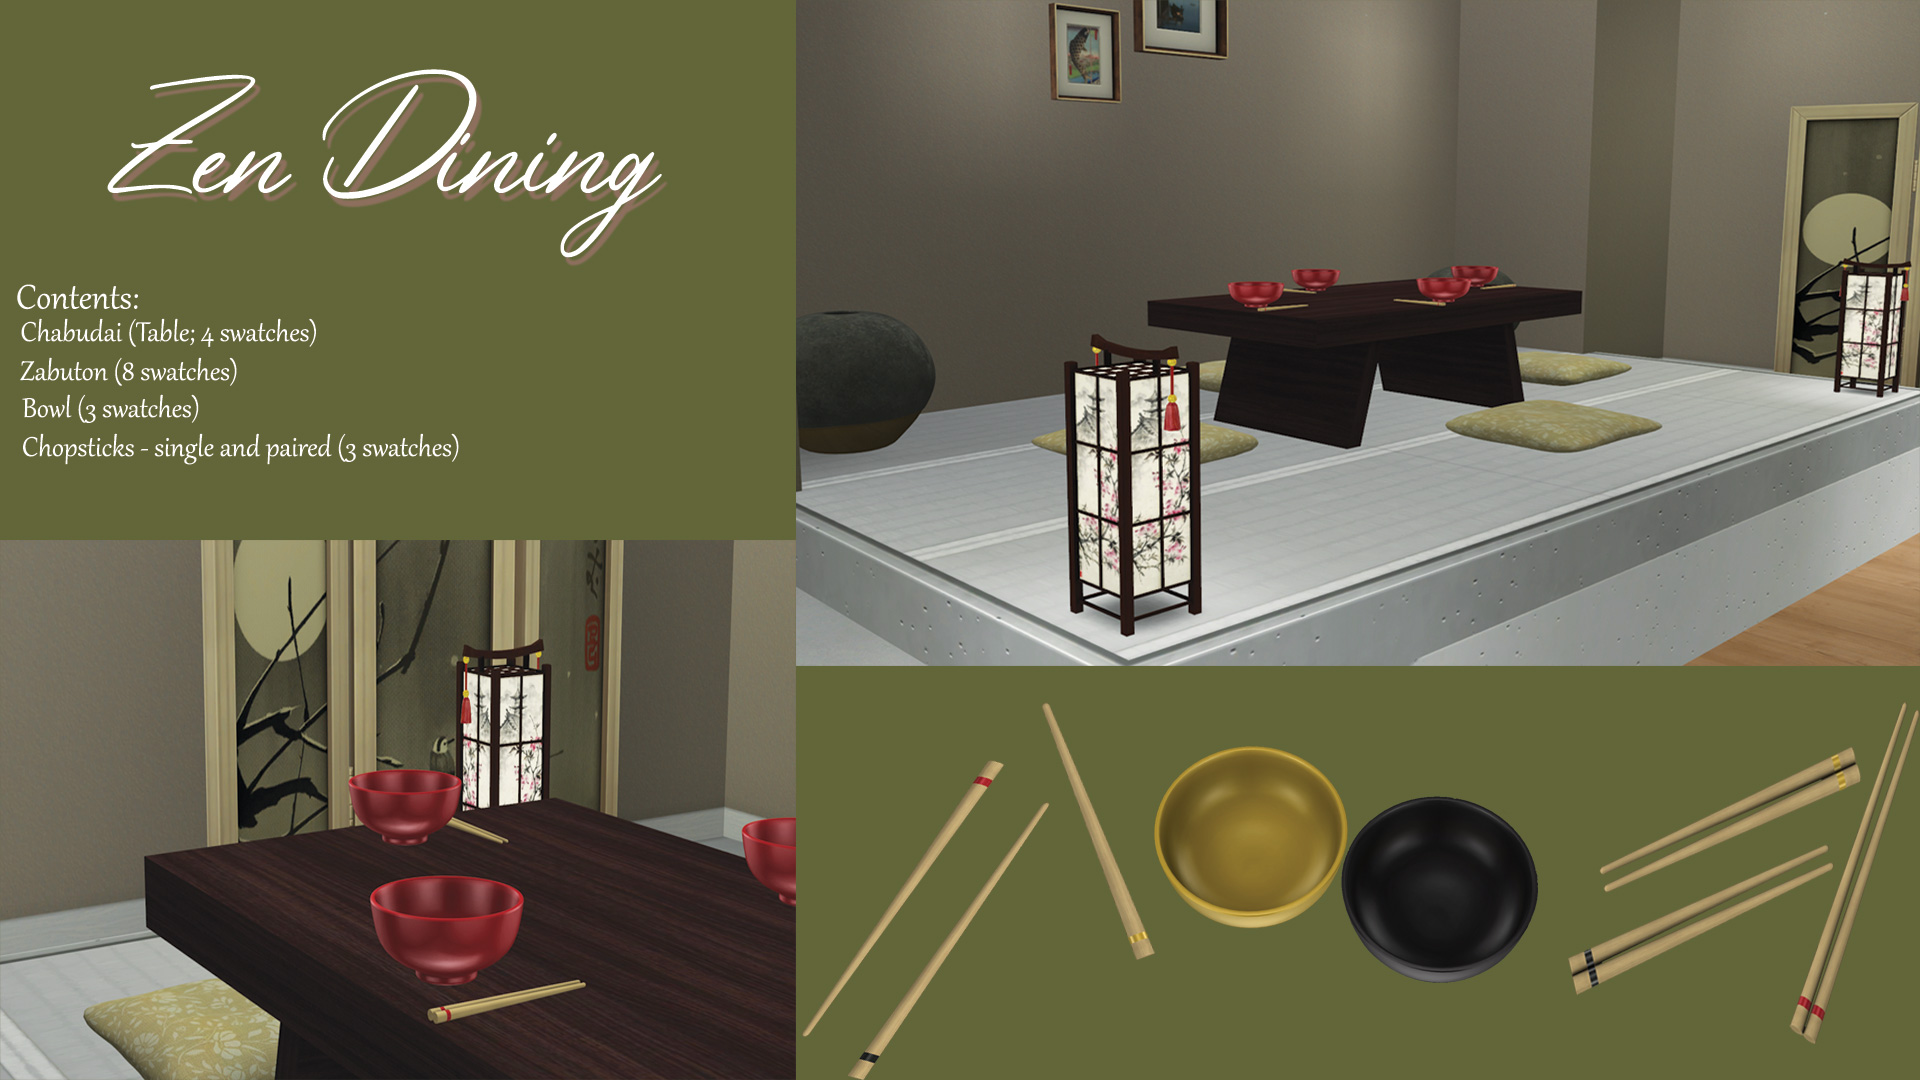 Zen Dining, high quality sims 4 cc, sunkissedlilacs, free sims 4 furniture, sims 4 custom content,